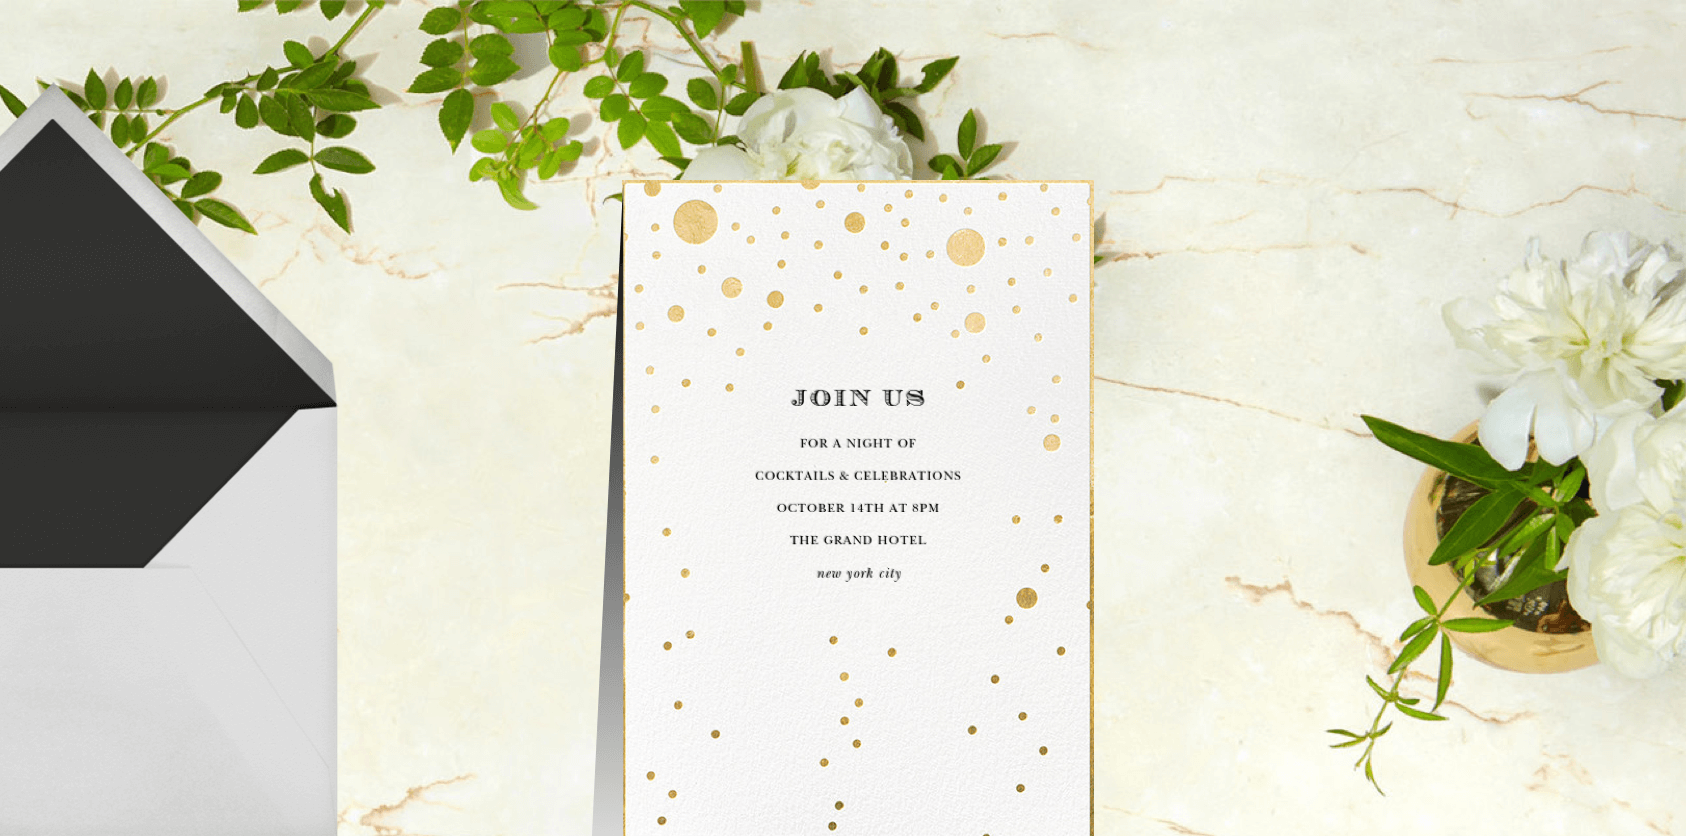 Invitations | Send online instantly | RSVP tracking